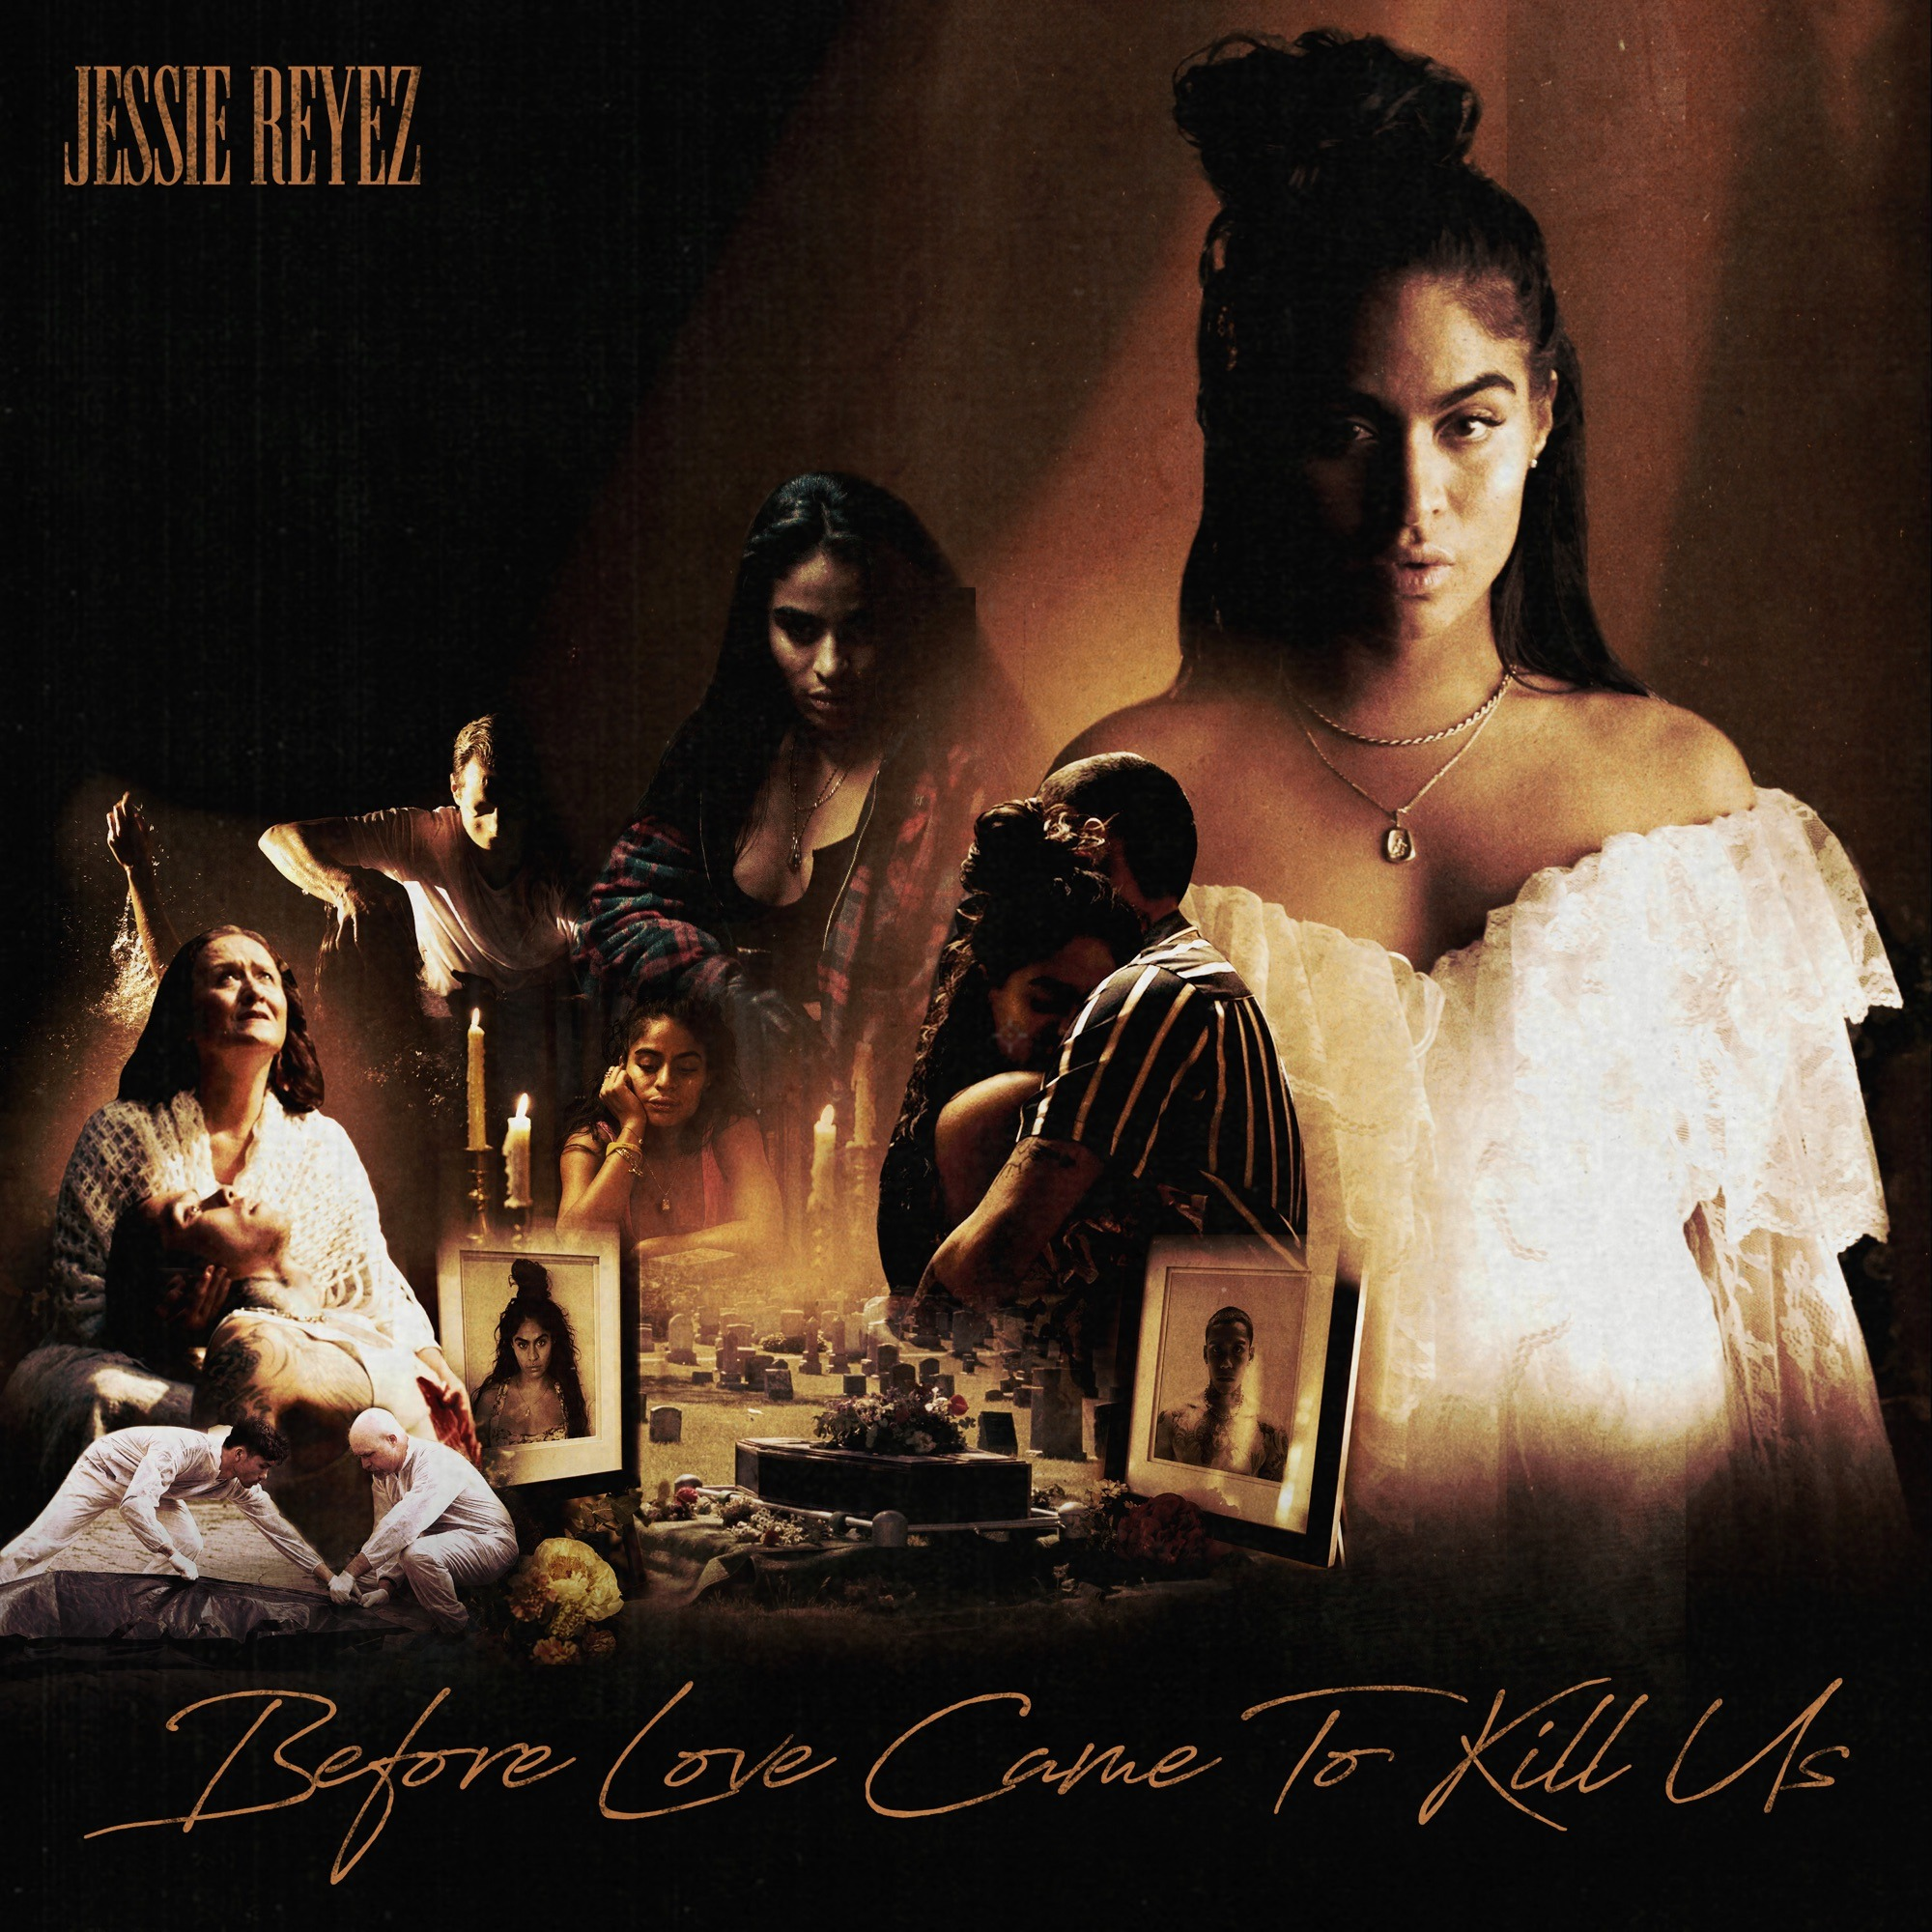 Jessie Reyez - BEFORE LOVE CAME TO KILL US (Deluxe)